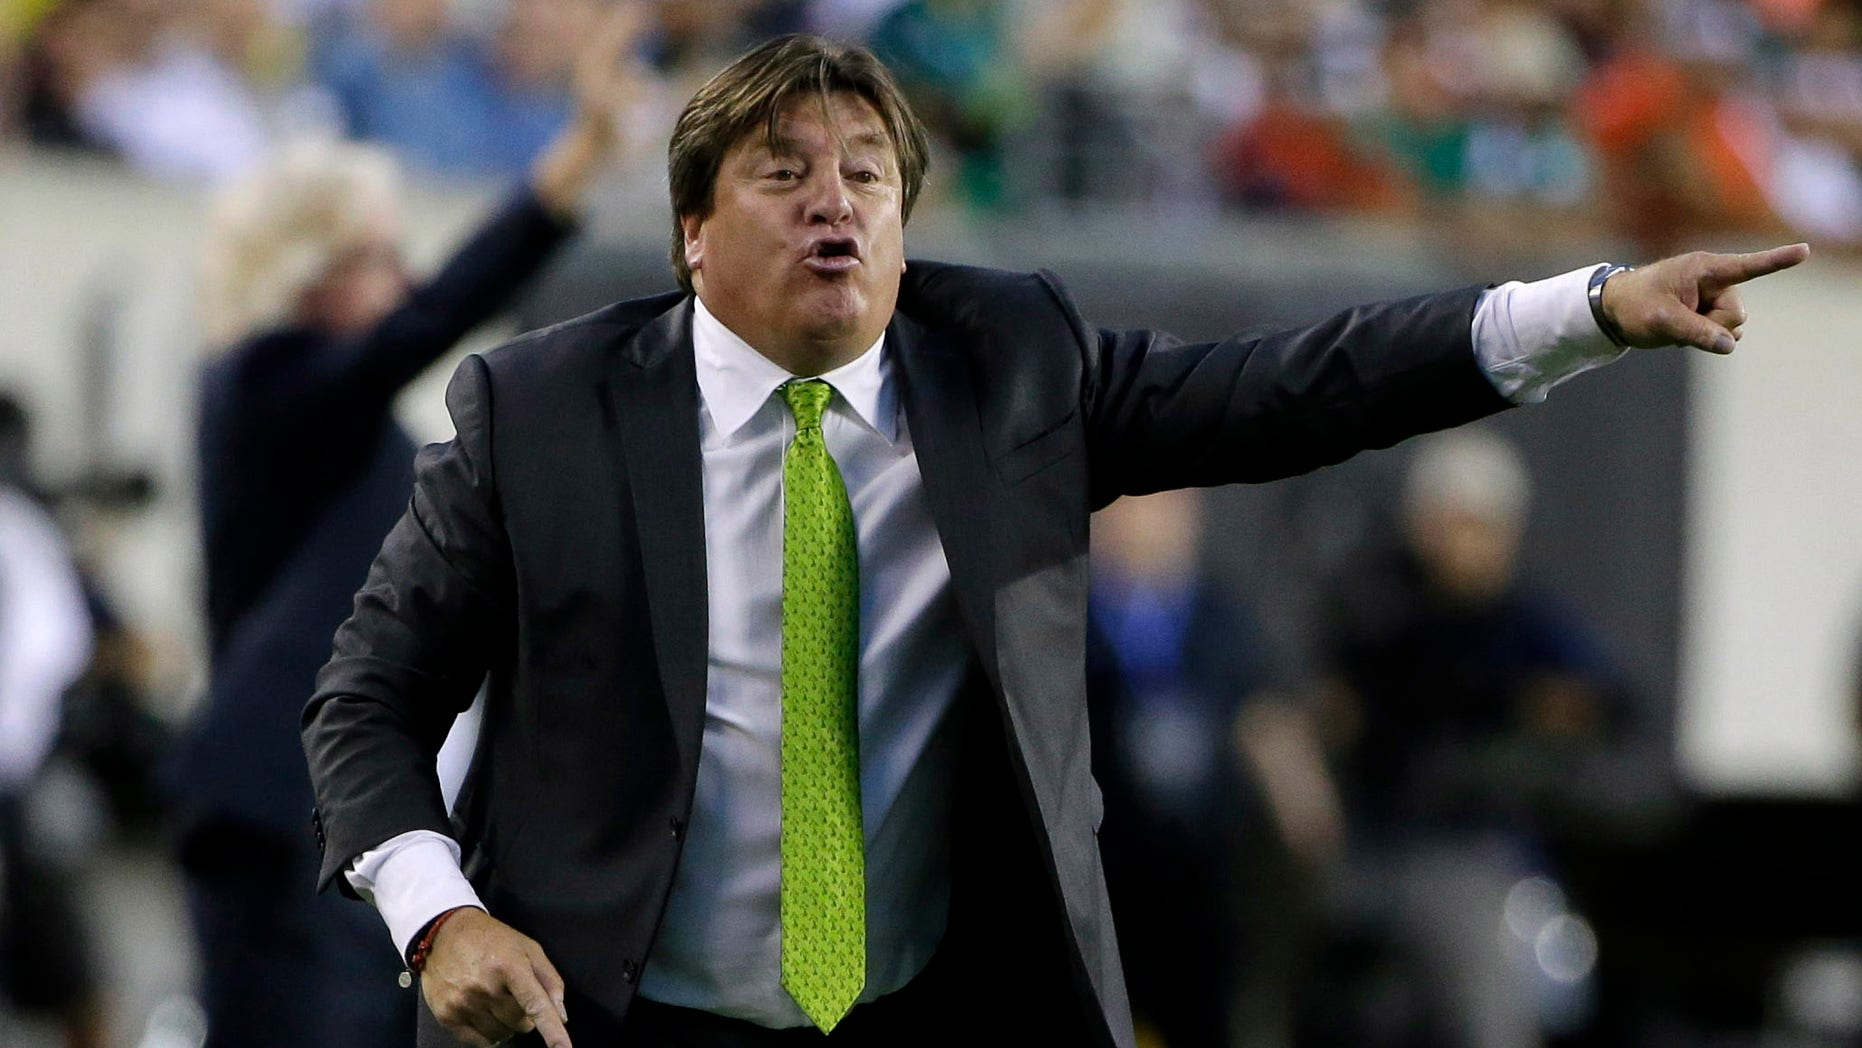 Mexico head coach Miguel Herrera yells during the first half of the CONCACAF Gold Cup championship soccer match against Jamaica, Sunday, July 26, 2015, in Philadelphia. (AP Photo/Matt Rourke)